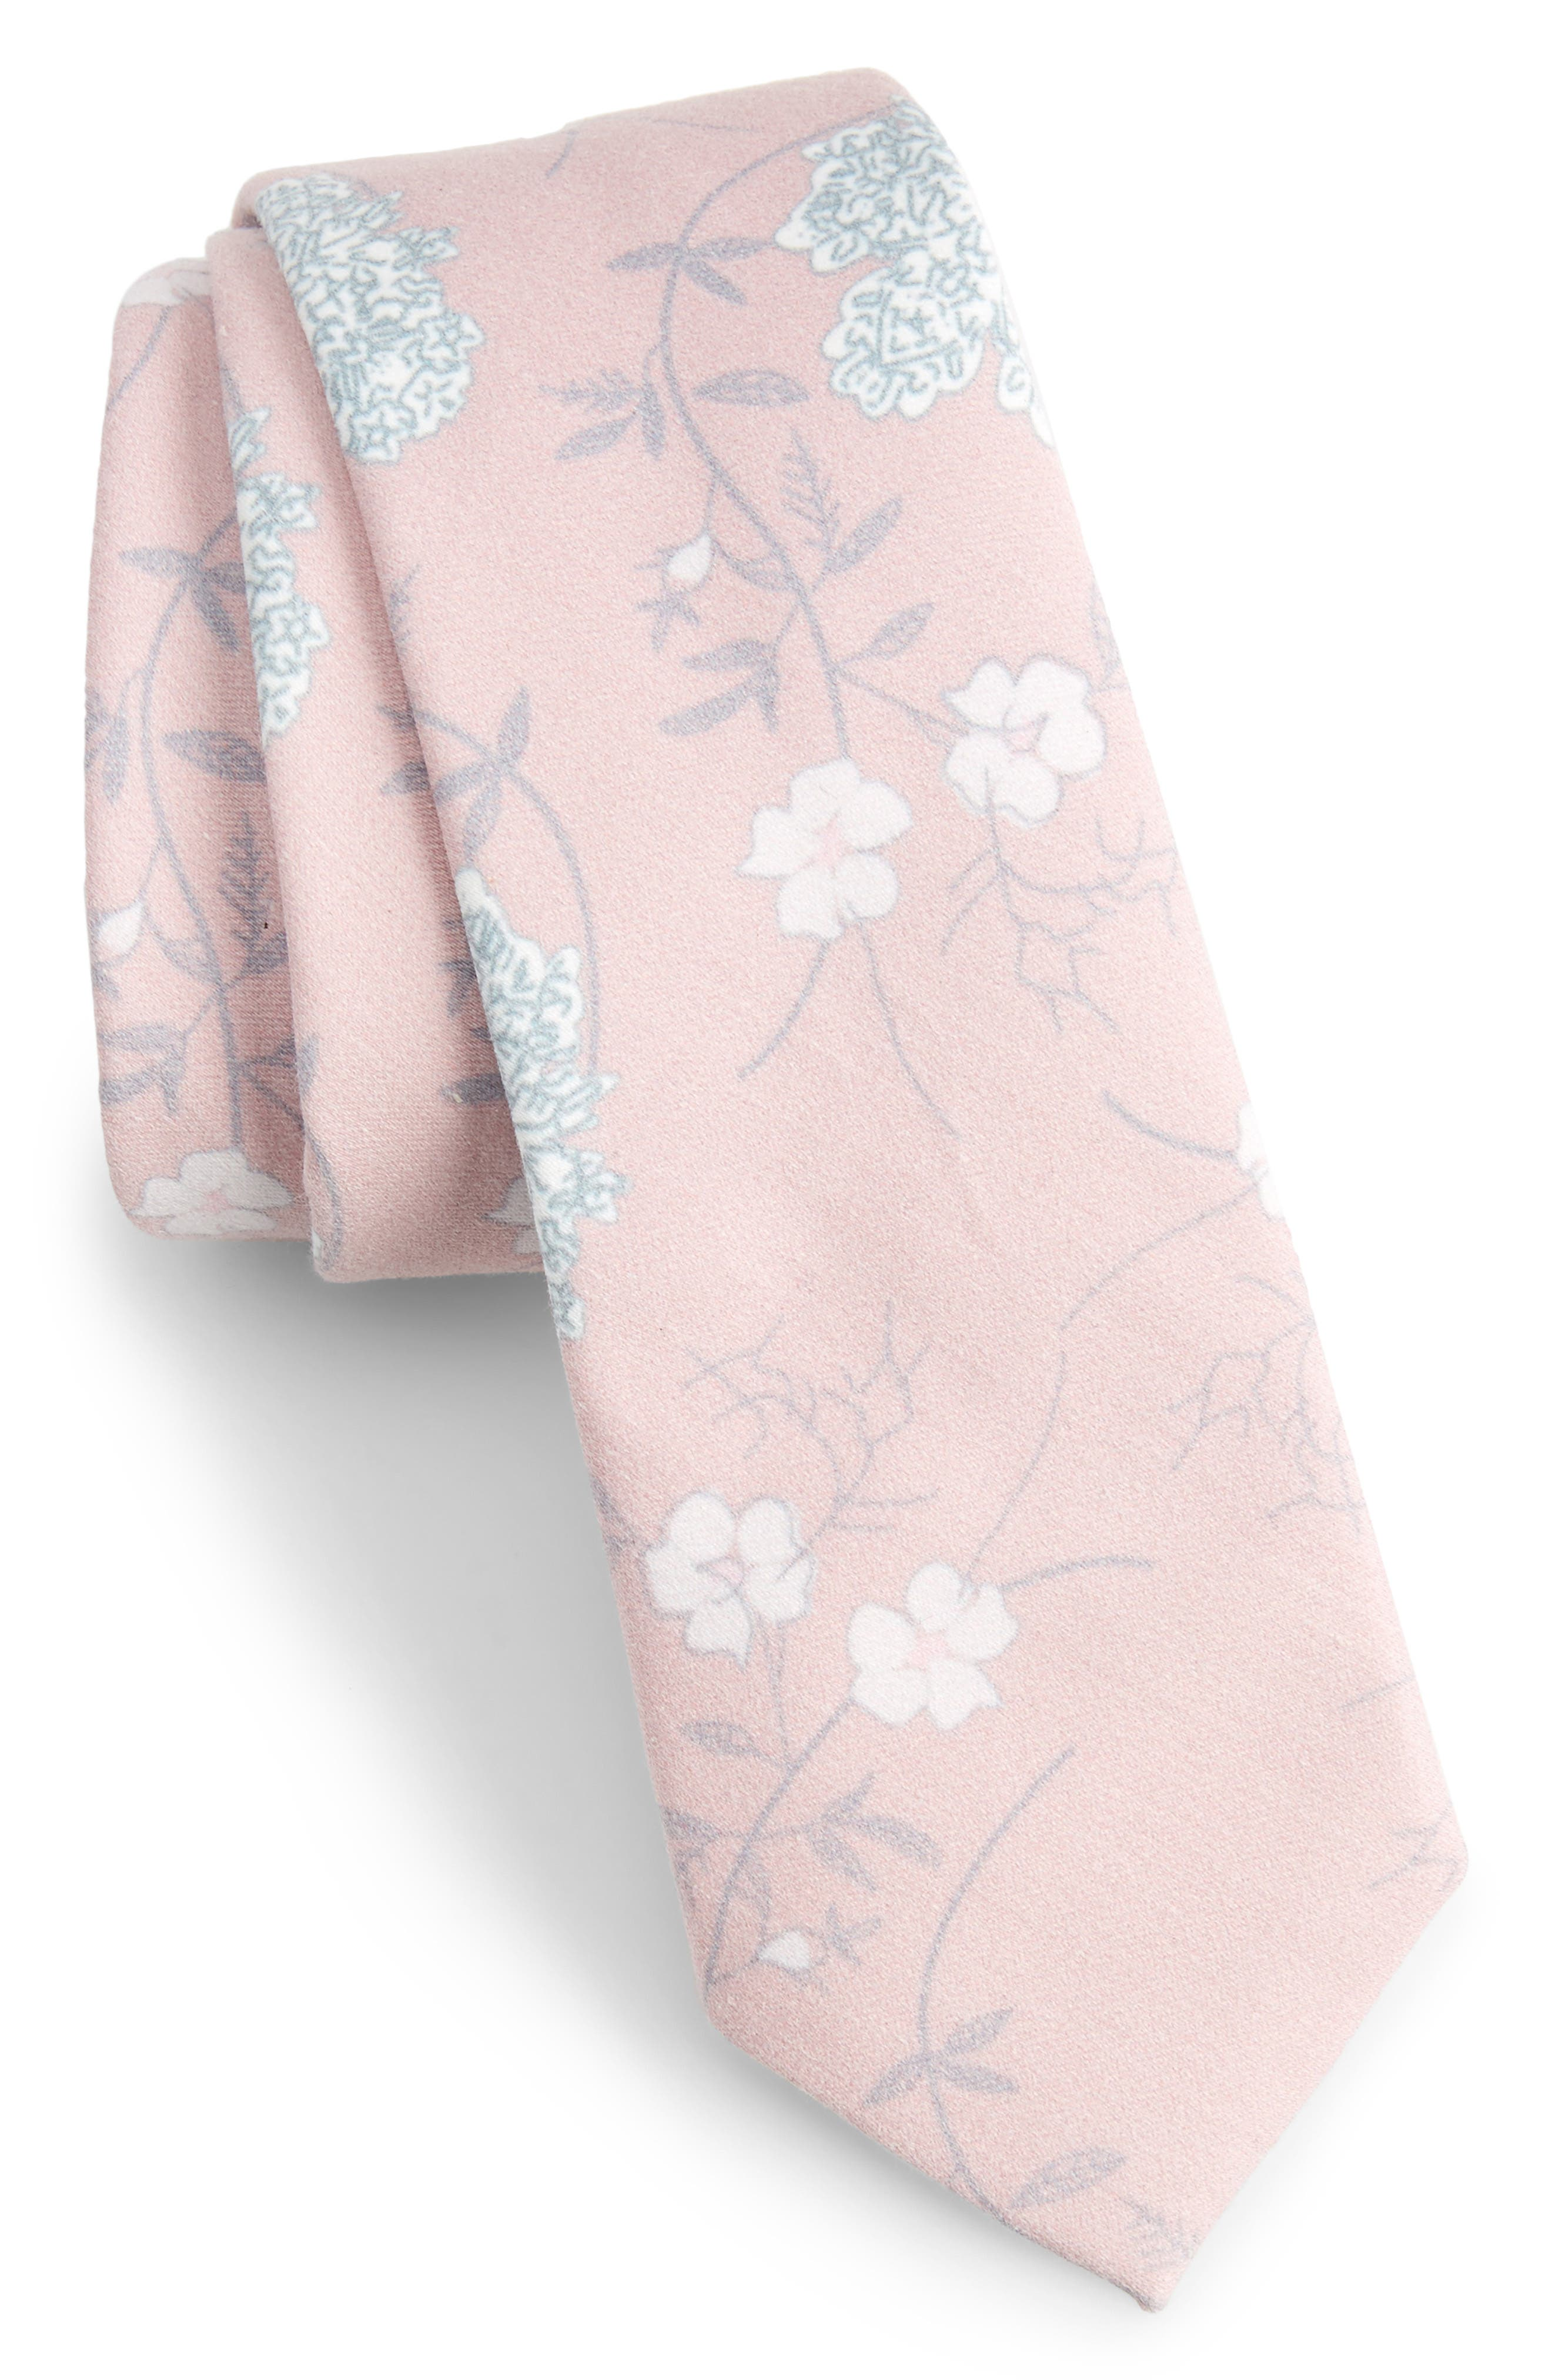 Huntwick Floral Cotton Skinny Tie,                         Main,                         color, Pink